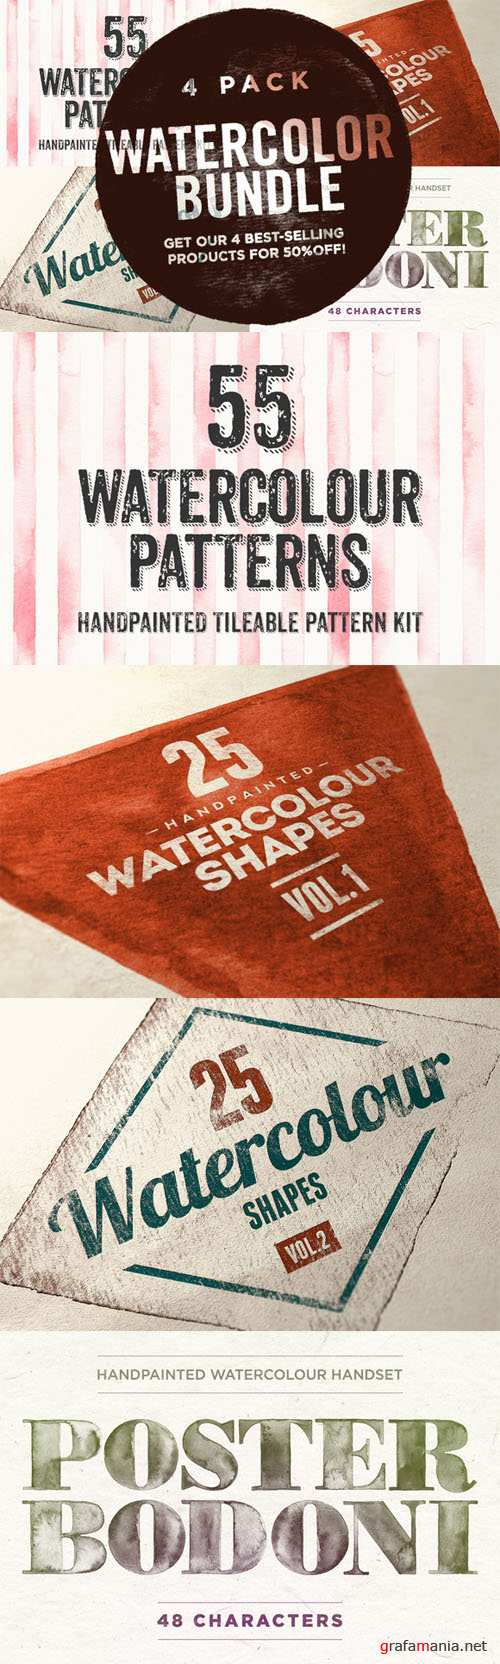 Watercolor Bundle - Creativemarket 21192